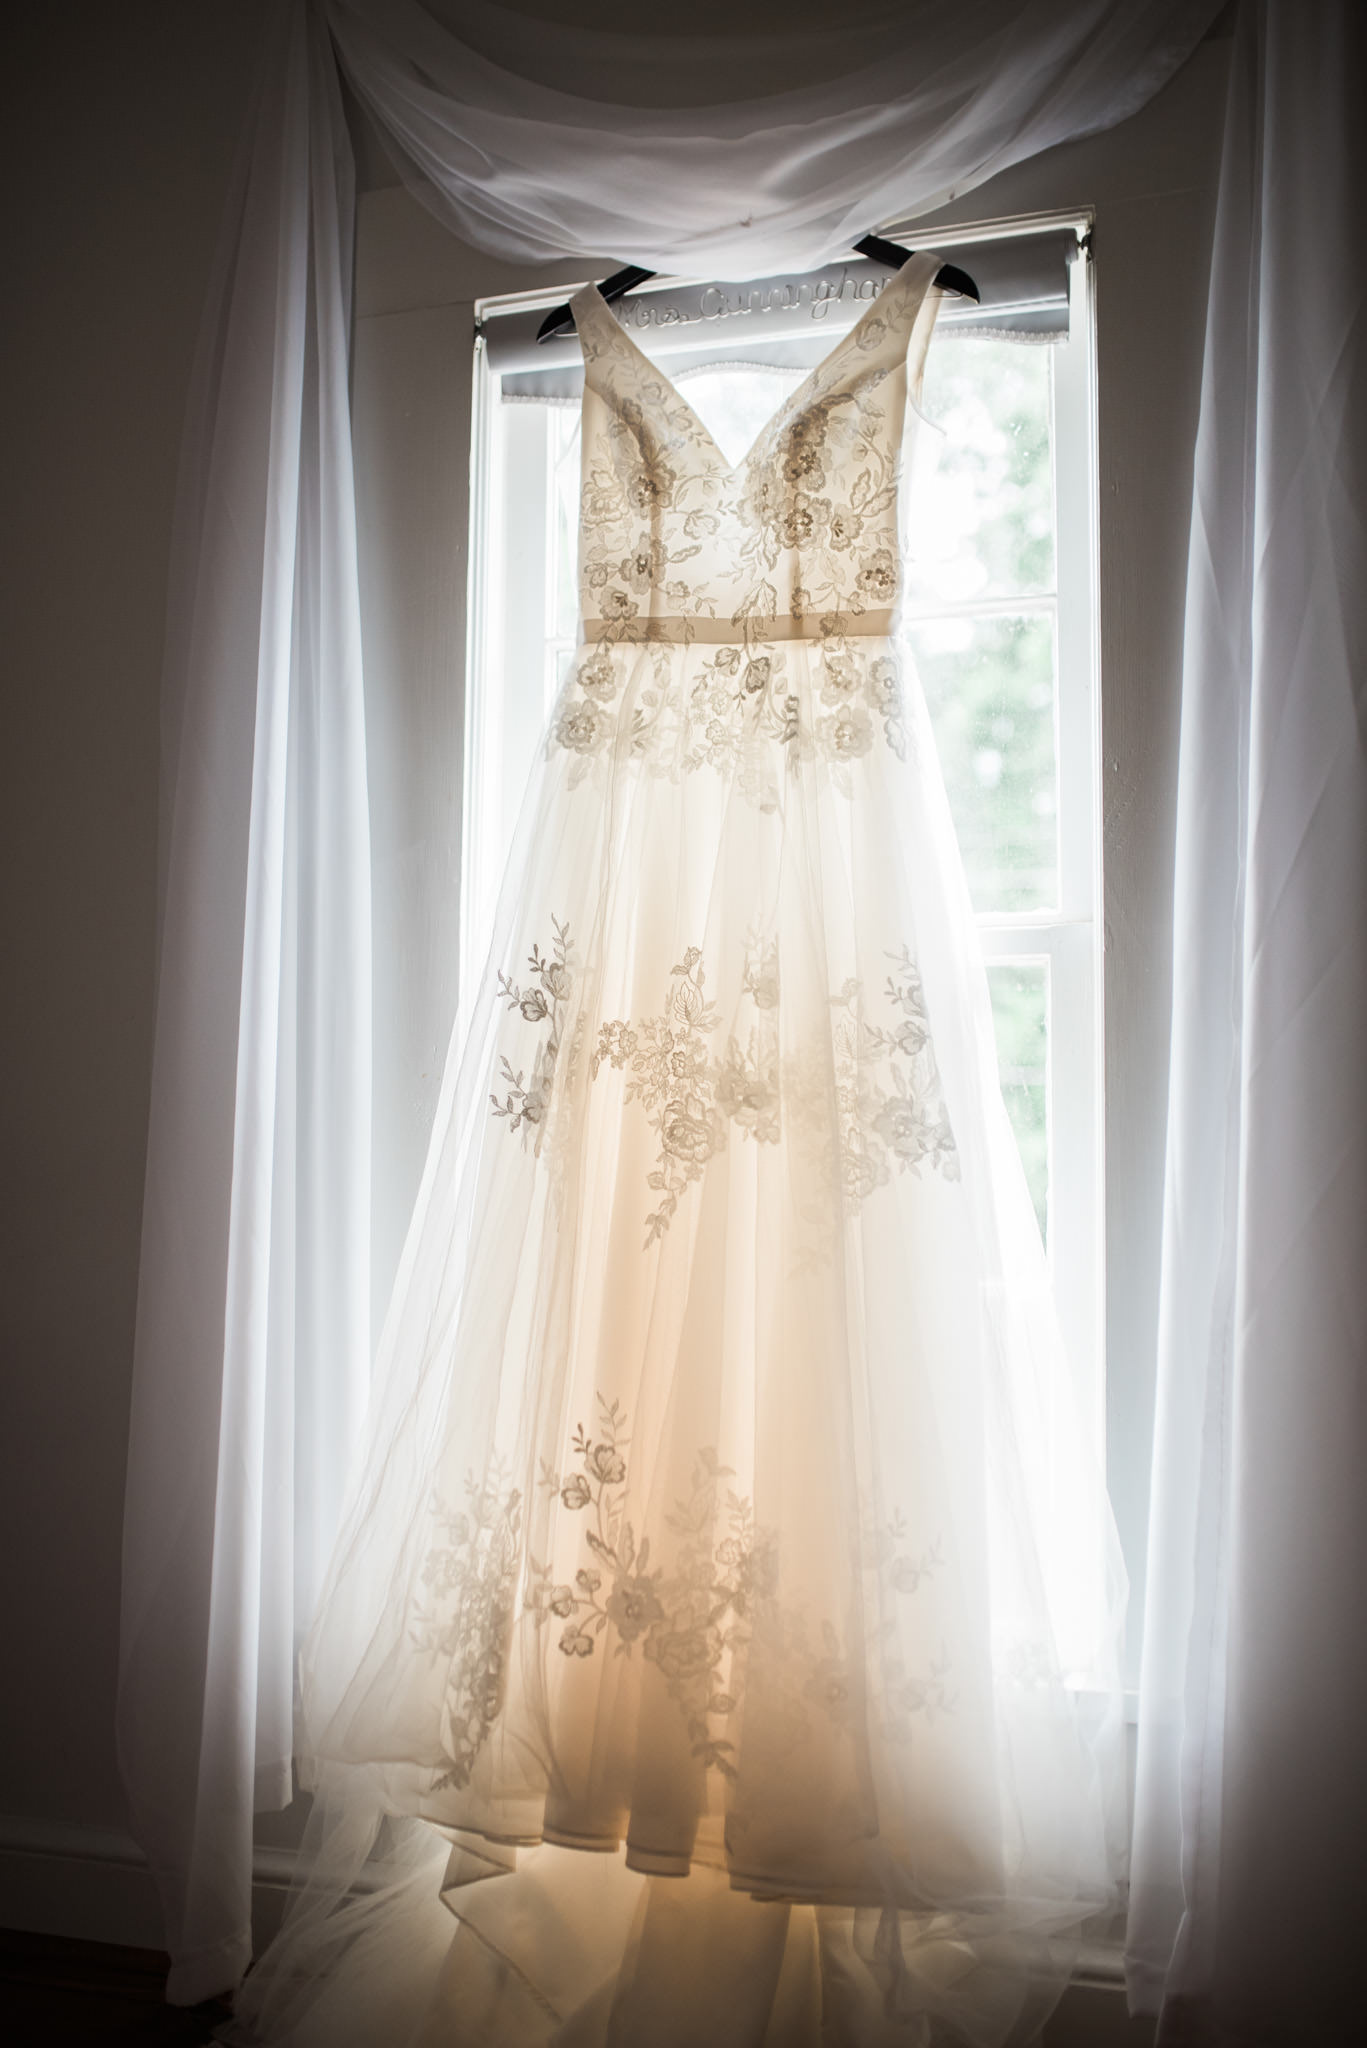 athens-wedding-dress-2.jpg